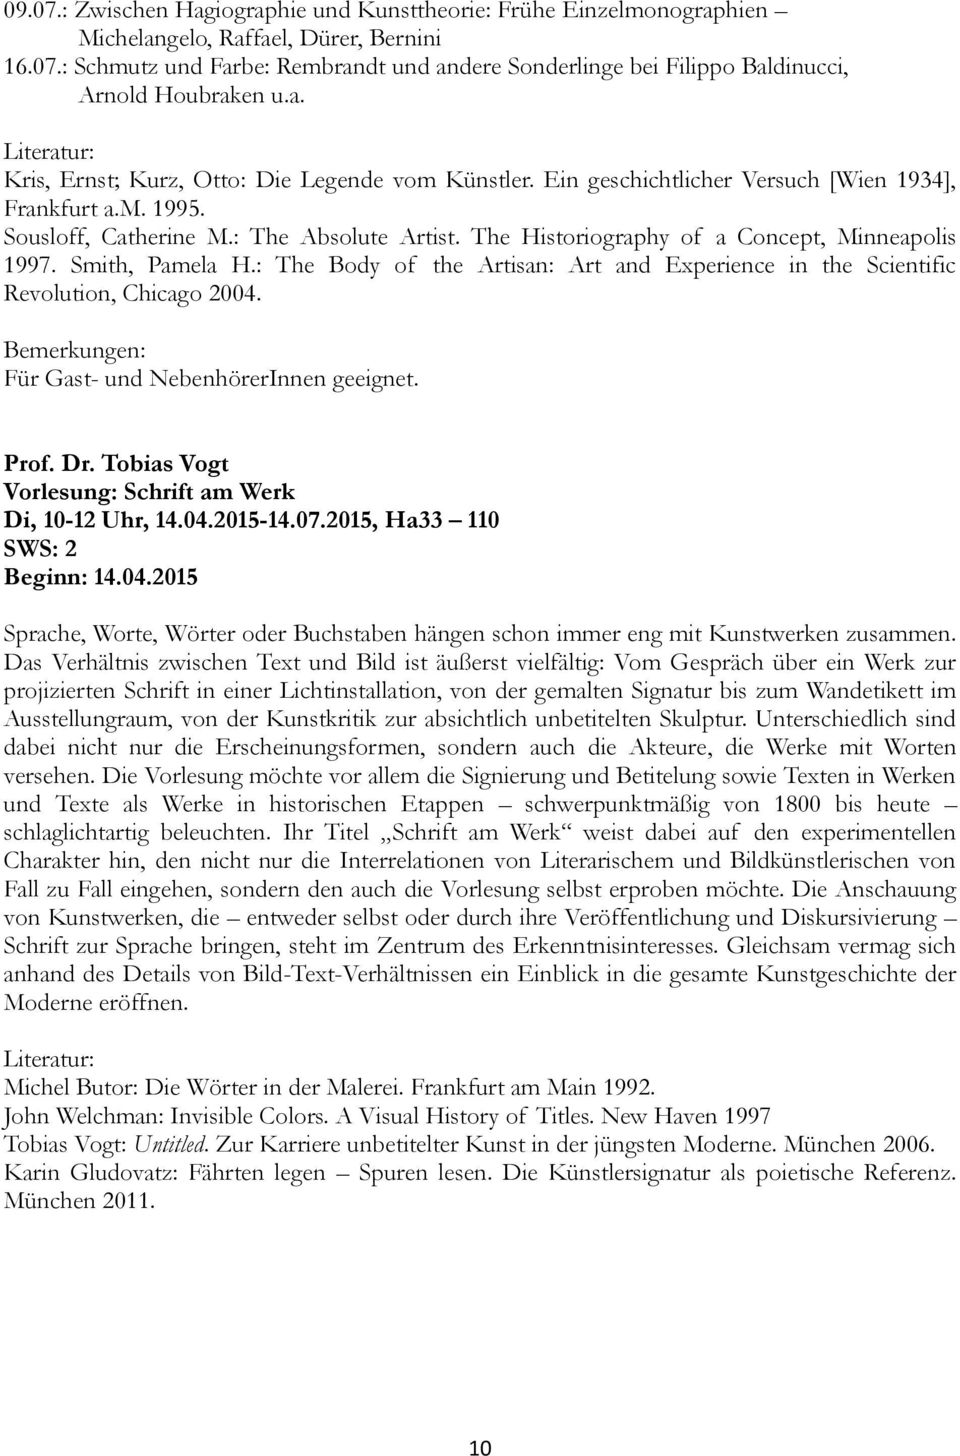 The Historiography of a Concept, Minneapolis 1997. Smith, Pamela H.: The Body of the Artisan: Art and Experience in the Scientific Revolution, Chicago 2004. Für Gast- und NebenhörerInnen geeignet.